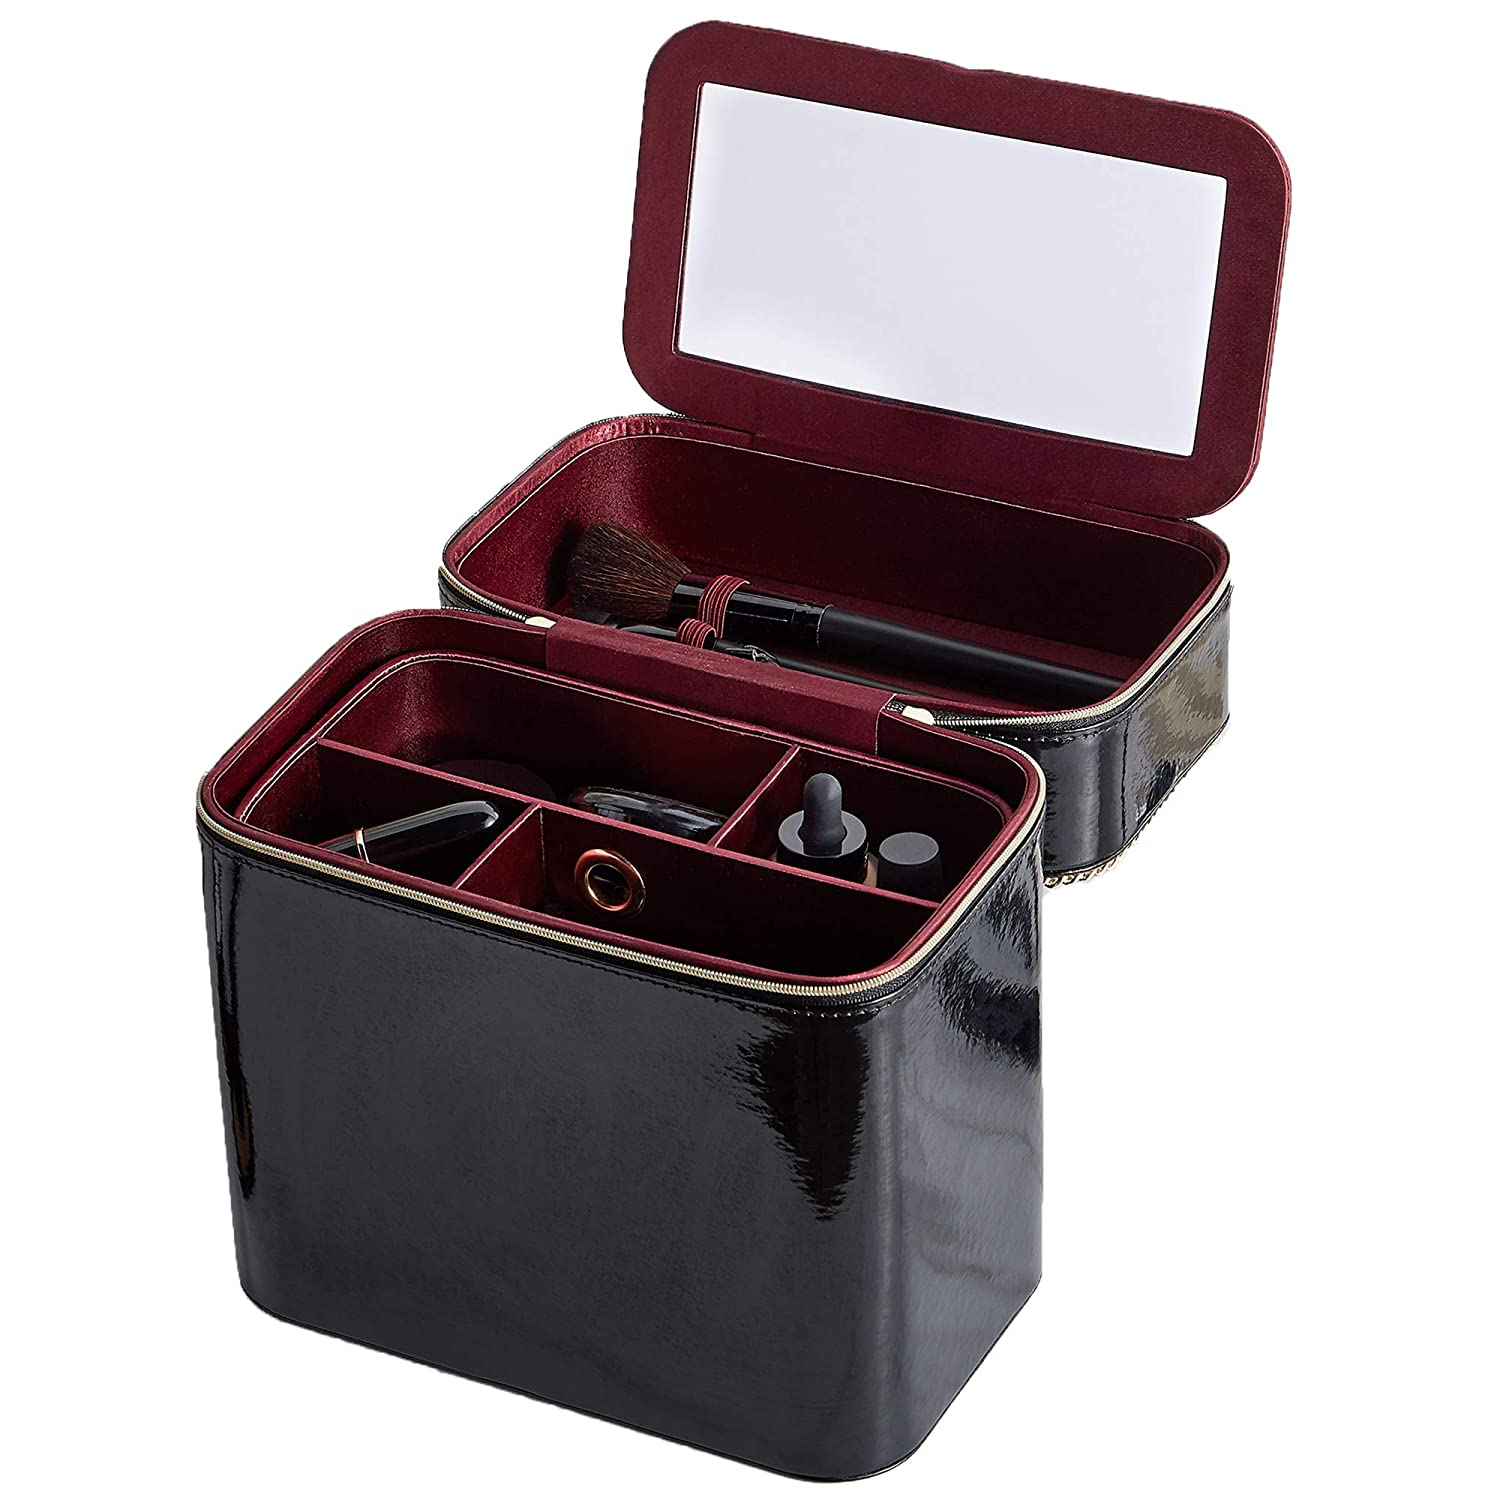 Beautify Black Faux Patent Leather Make Up Carry Case/Bucket Bag With Flip Up Mirror, Removable Trays & Elasticated Brush Holders – For Jewellery, Beauty, Cosmetics & More – Ideal For Travel/Gift Cosmetics & More - Ideal For Travel/Gift